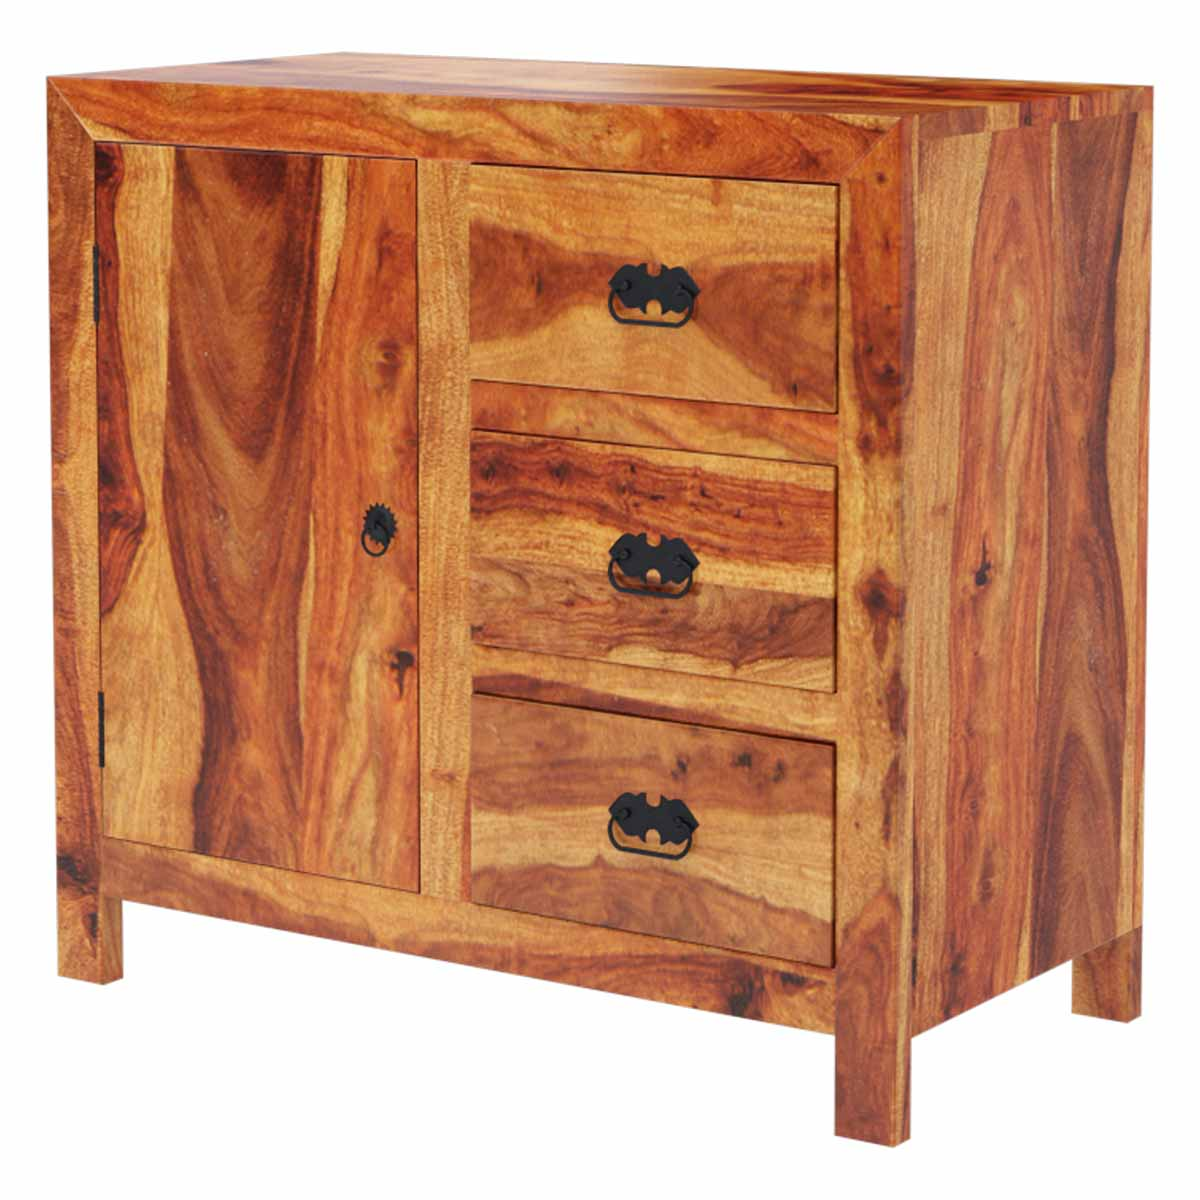 Appalachian Rustic 3 Drawer Kitchen Buffet Storage Cabinet